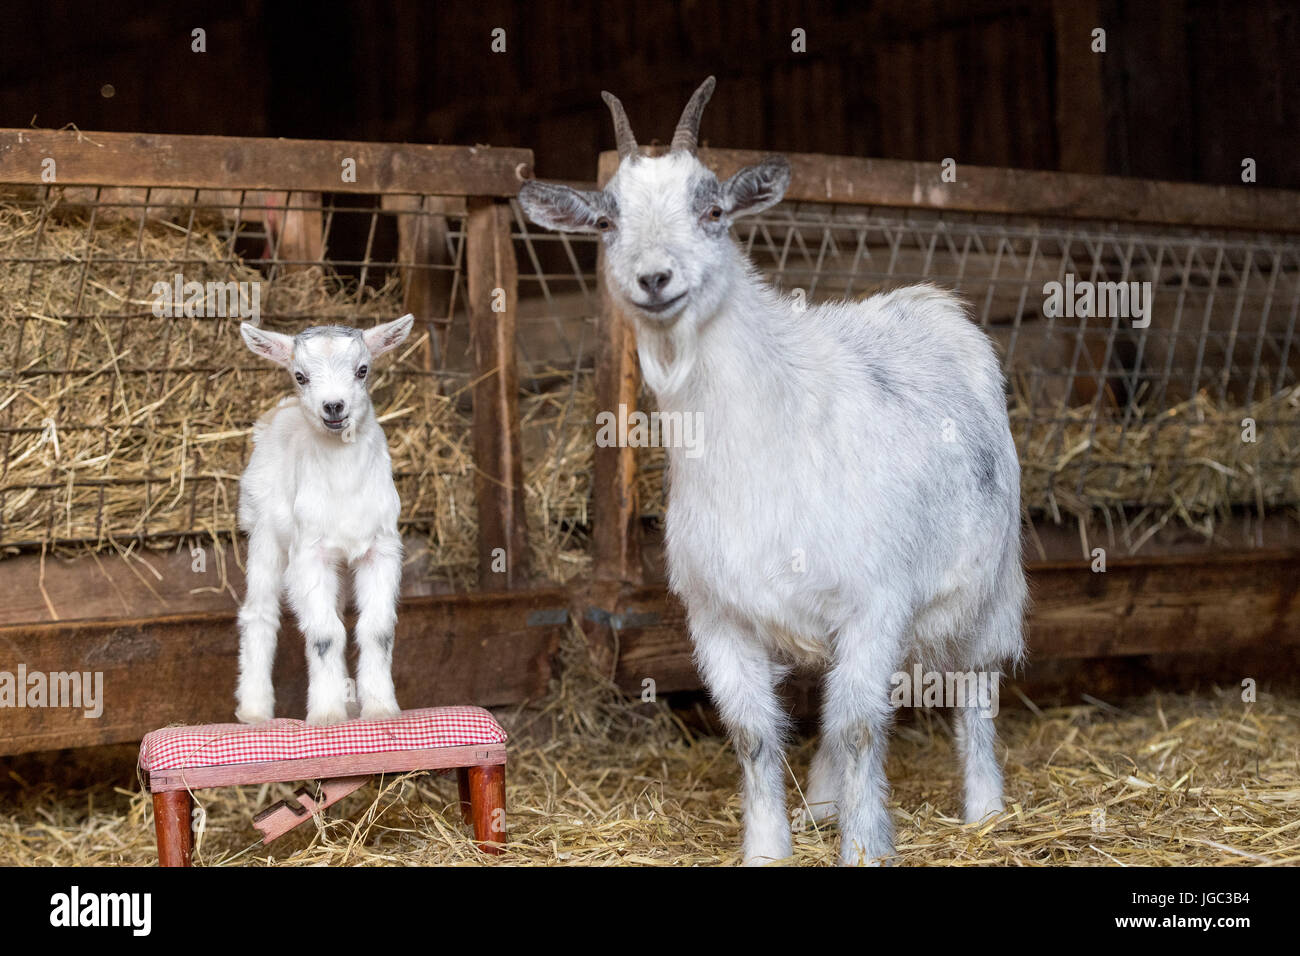 Nanny And Kid Pygmy Goat In Pen